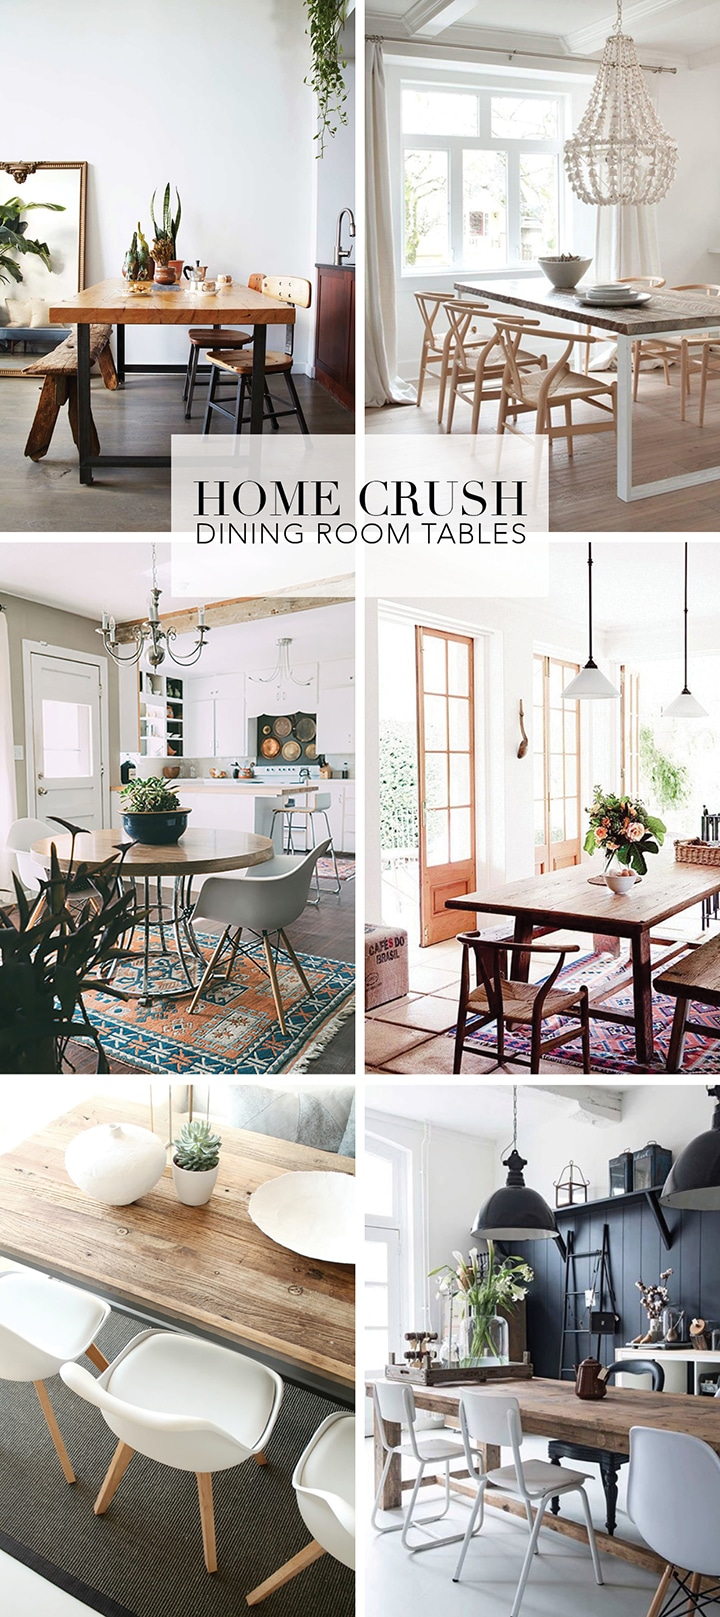 Love these dining room tables, great inspiration.